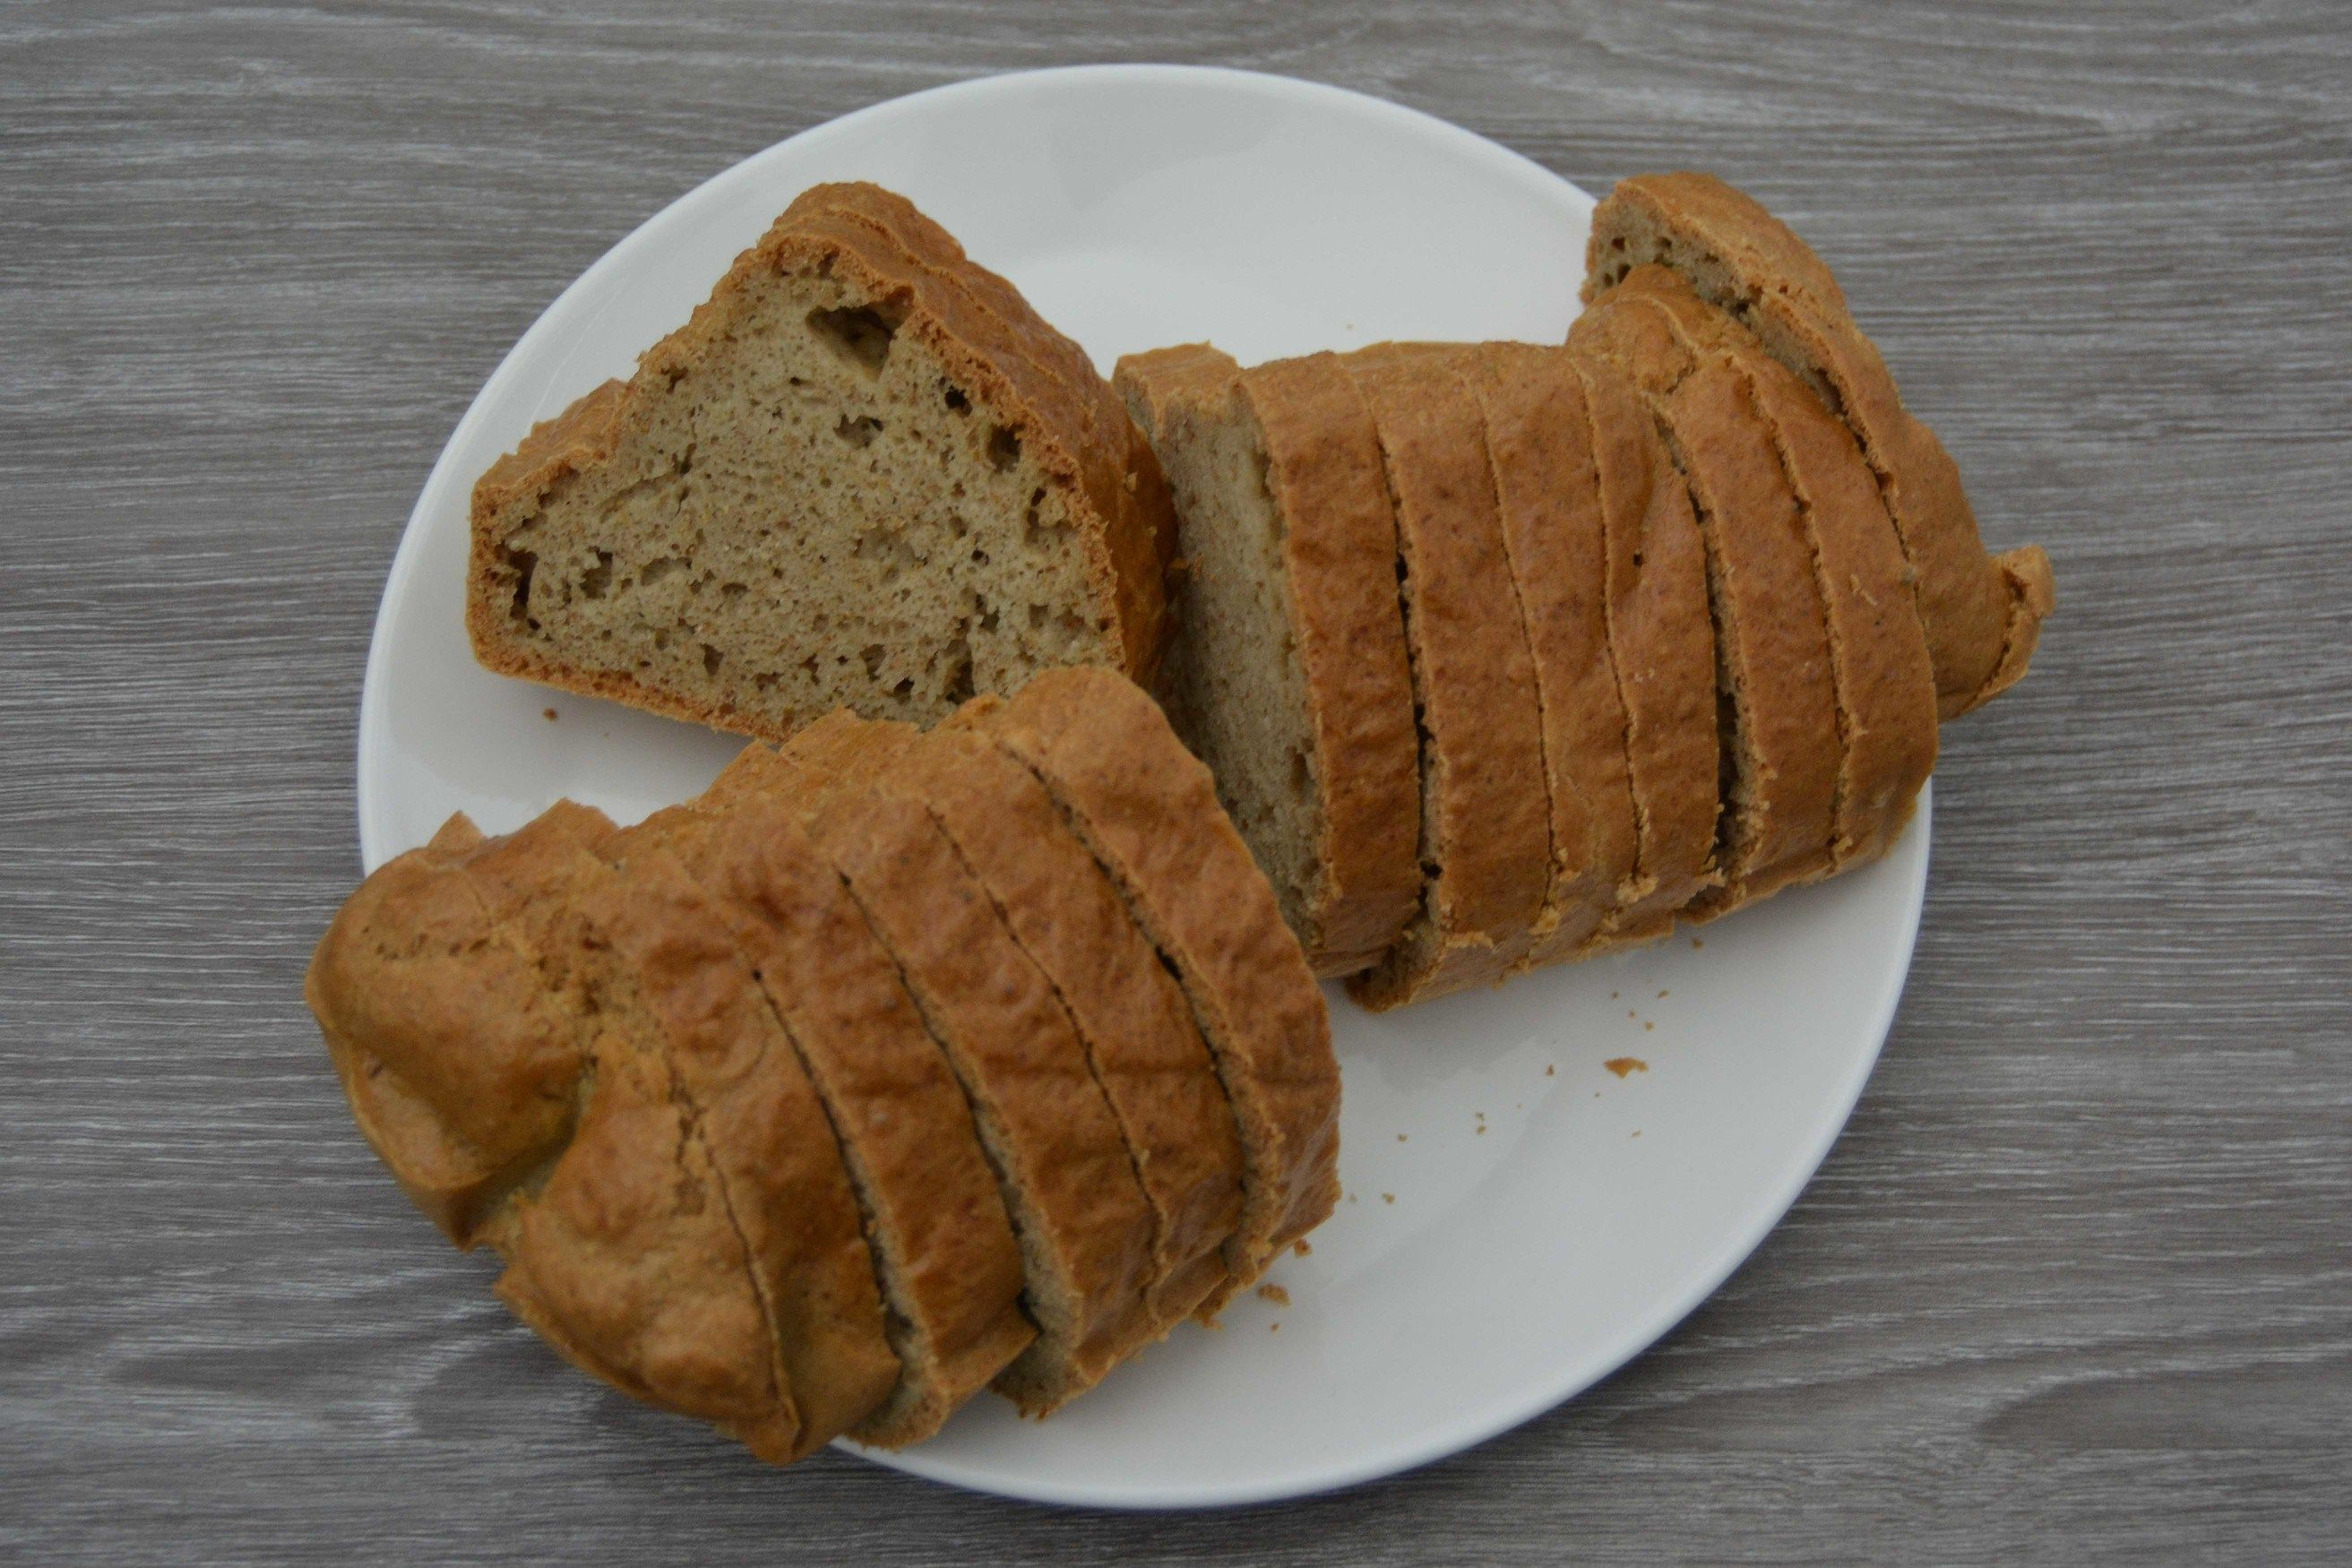 Sazra - Simple Mills Artisan Bread review. Gluten free.